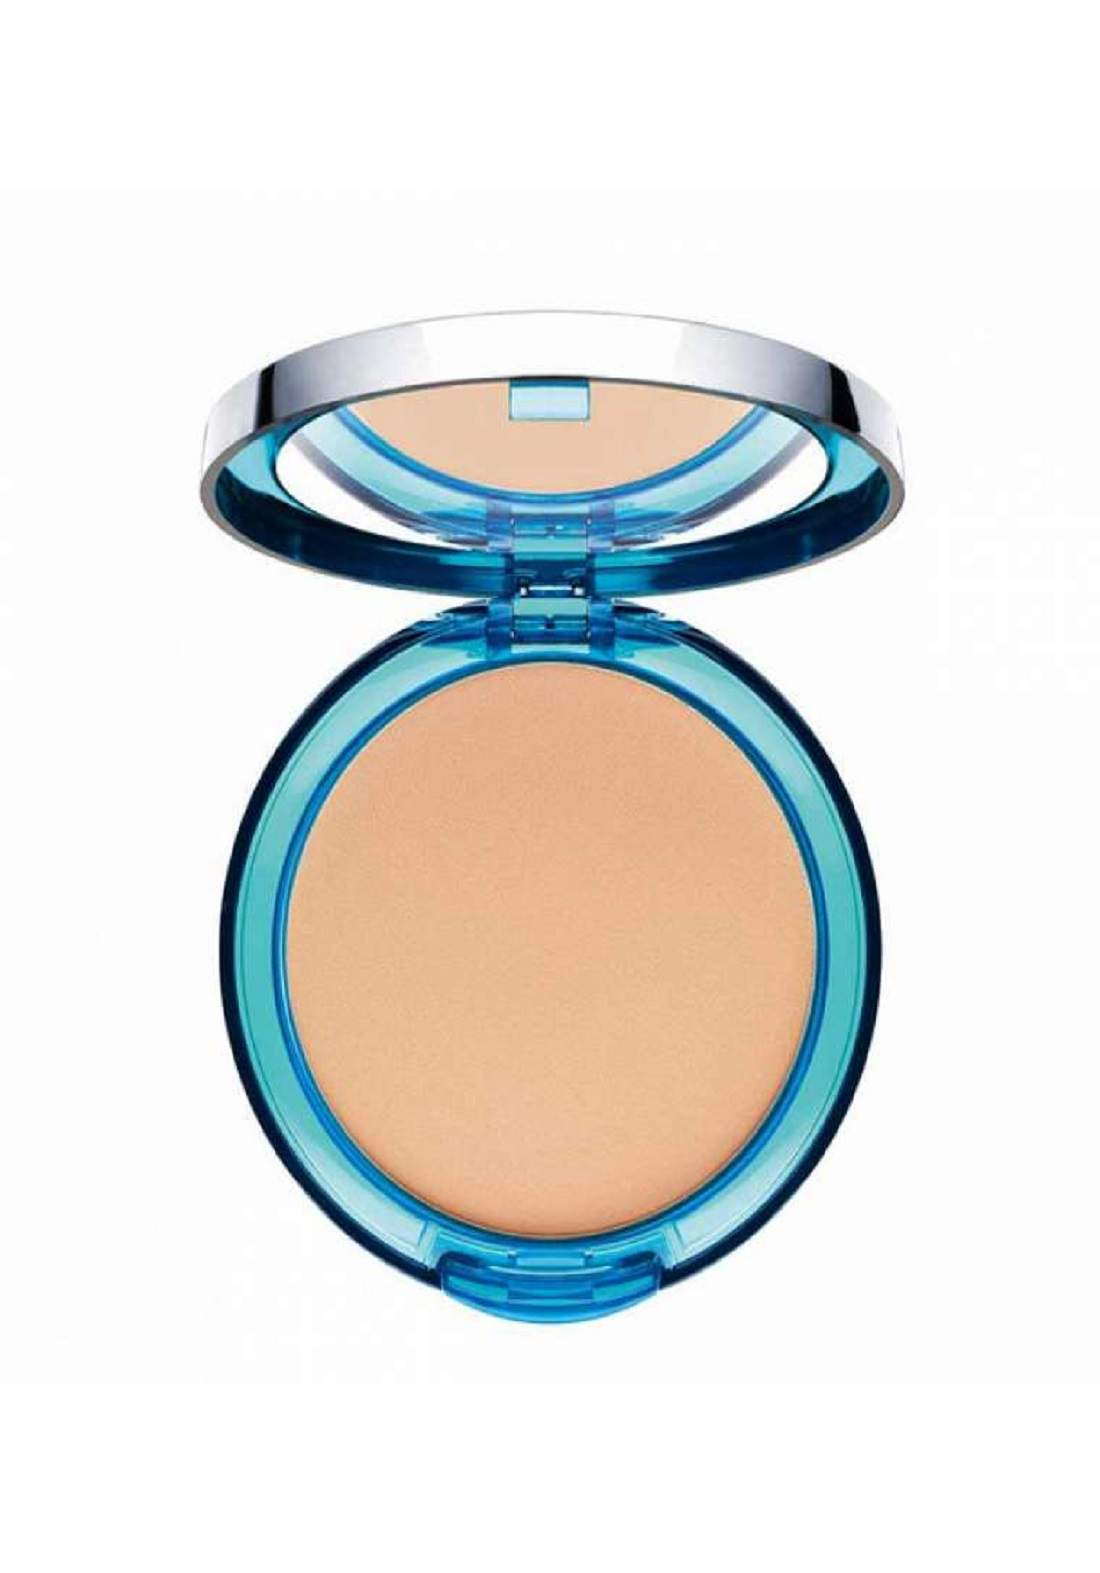 Artdeco Sun Protection Wet & Dry Powder  Foundation With Spf50 No.20 Cool Beige 9.5g Filter باودر